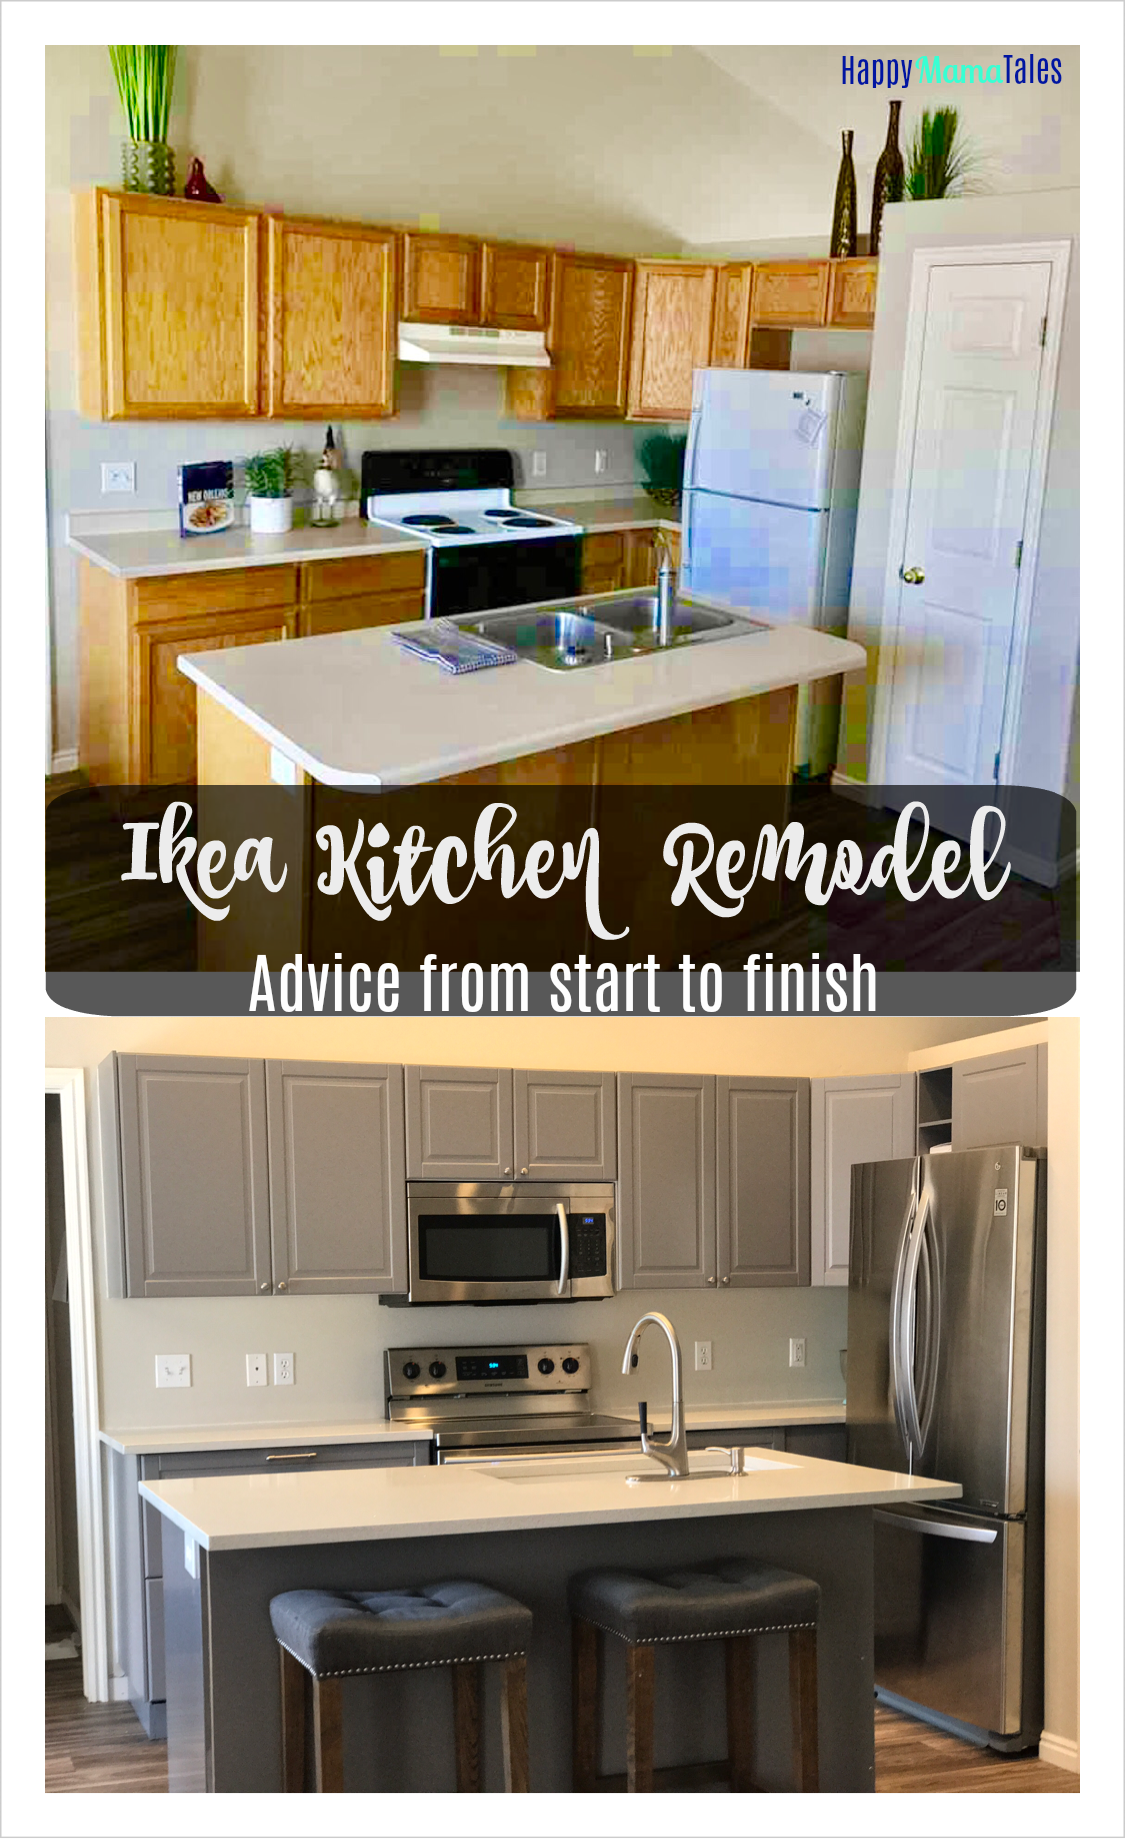 Ikea Kitchen Remodel Before & After s Happy Mama Tales